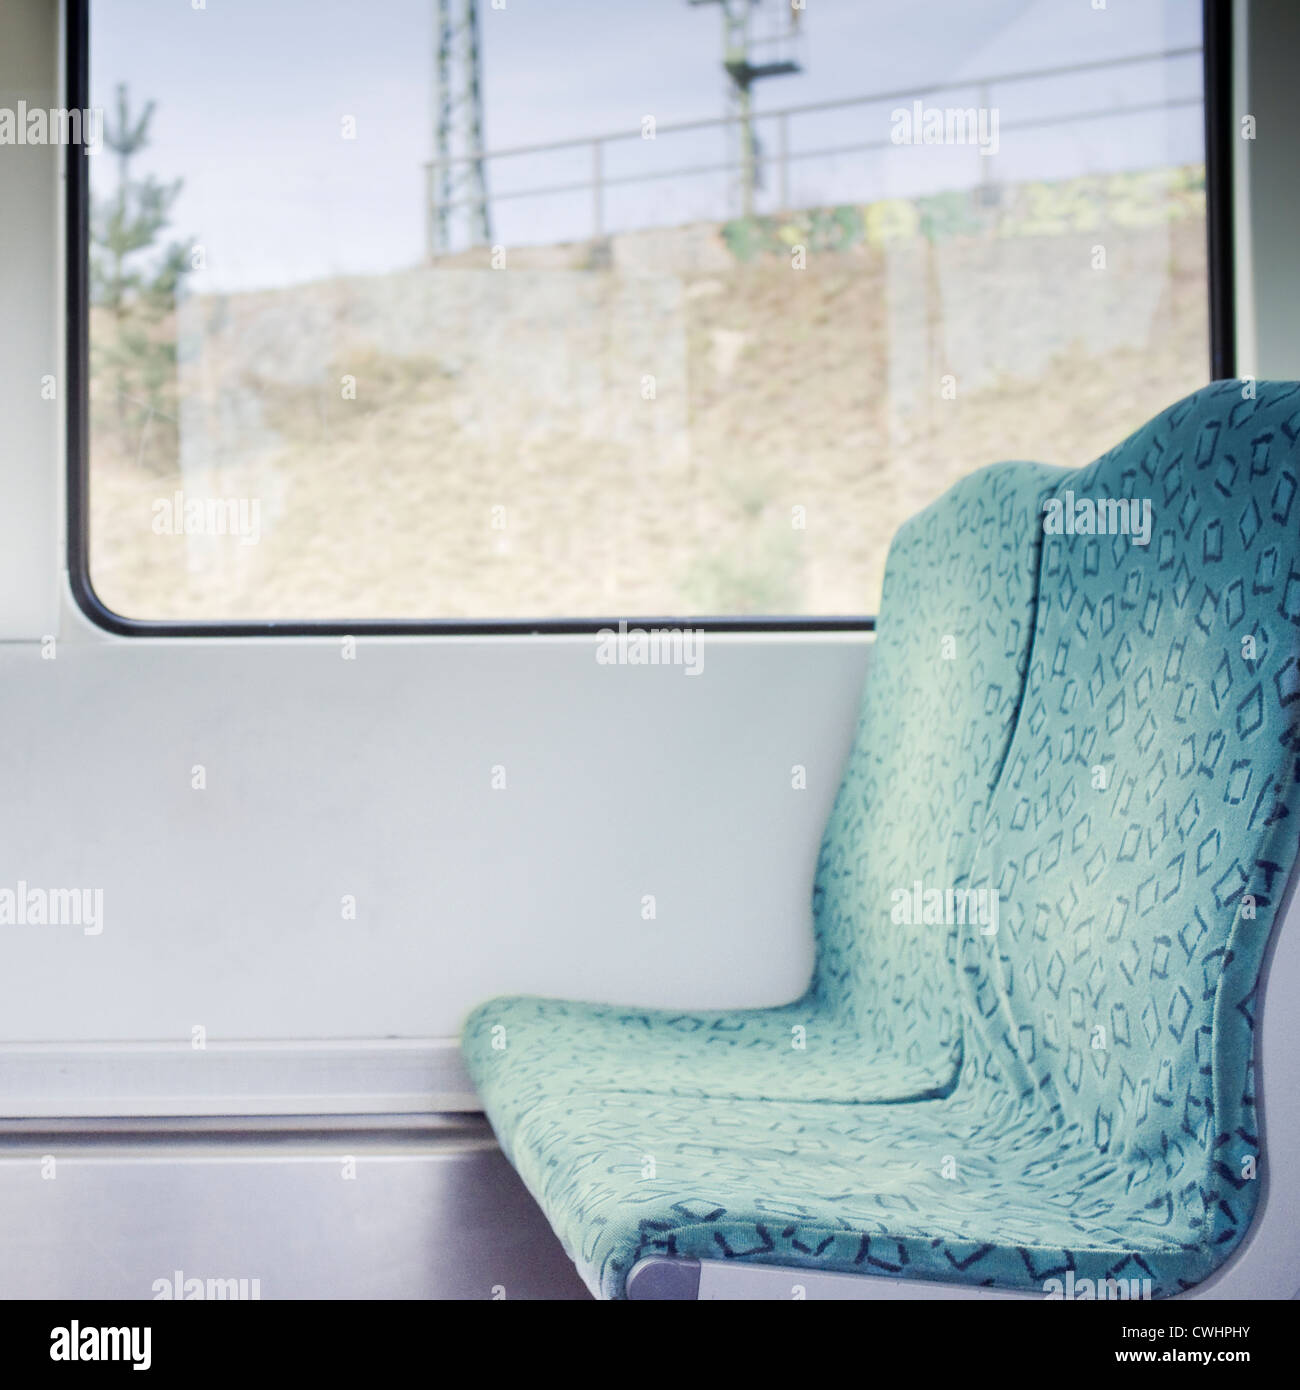 subway train,s-bahn,window seat - Stock Image